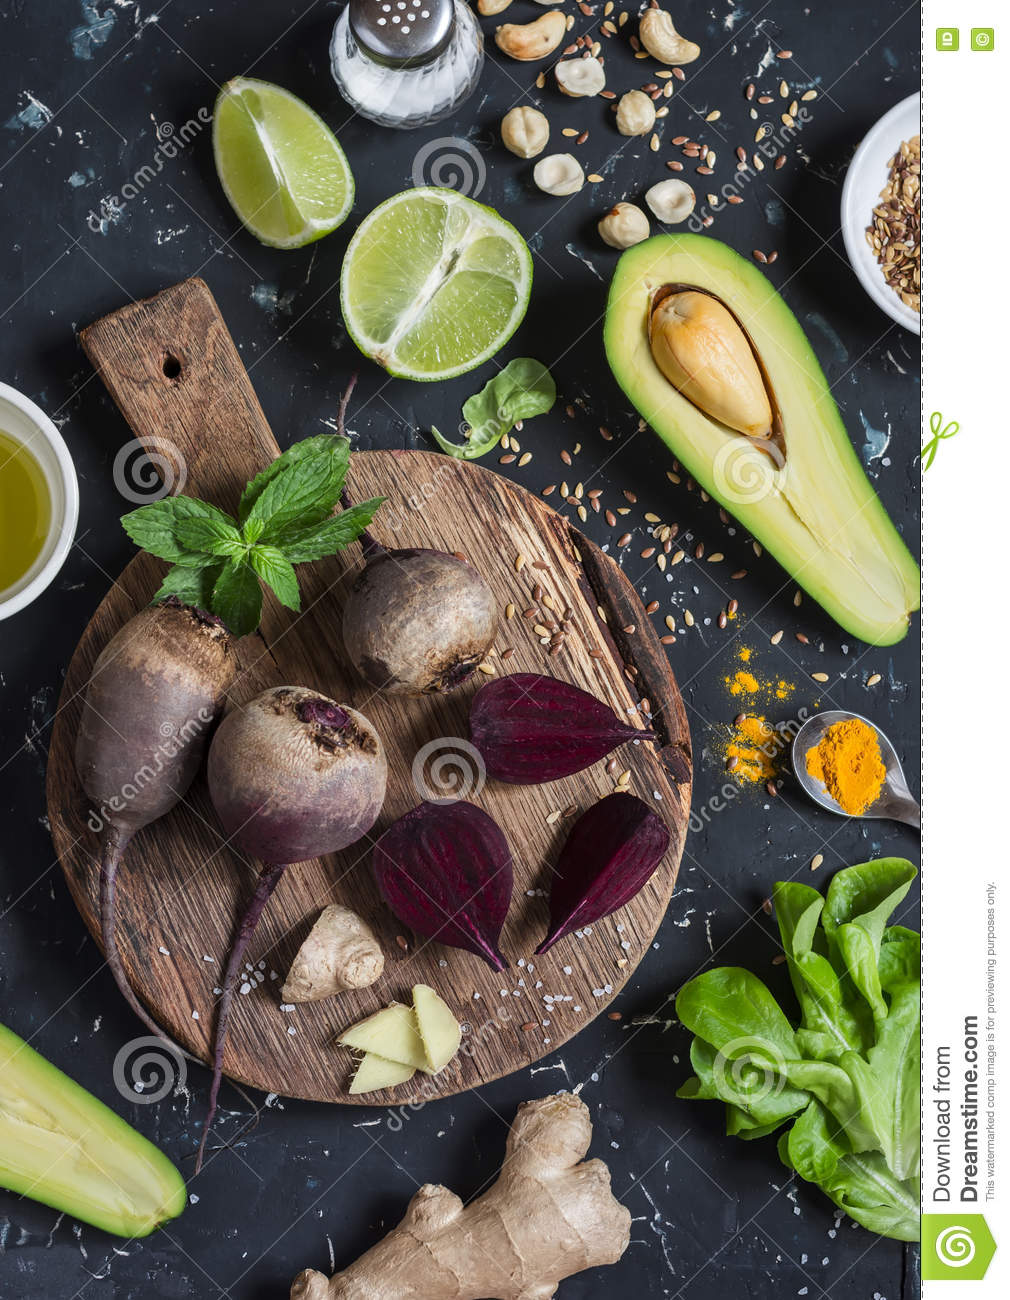 Wallpaper Food Cooking Grill Vegetables Peppers: Ingredients For Cooking Beet And Avocado Detox Salad. On A